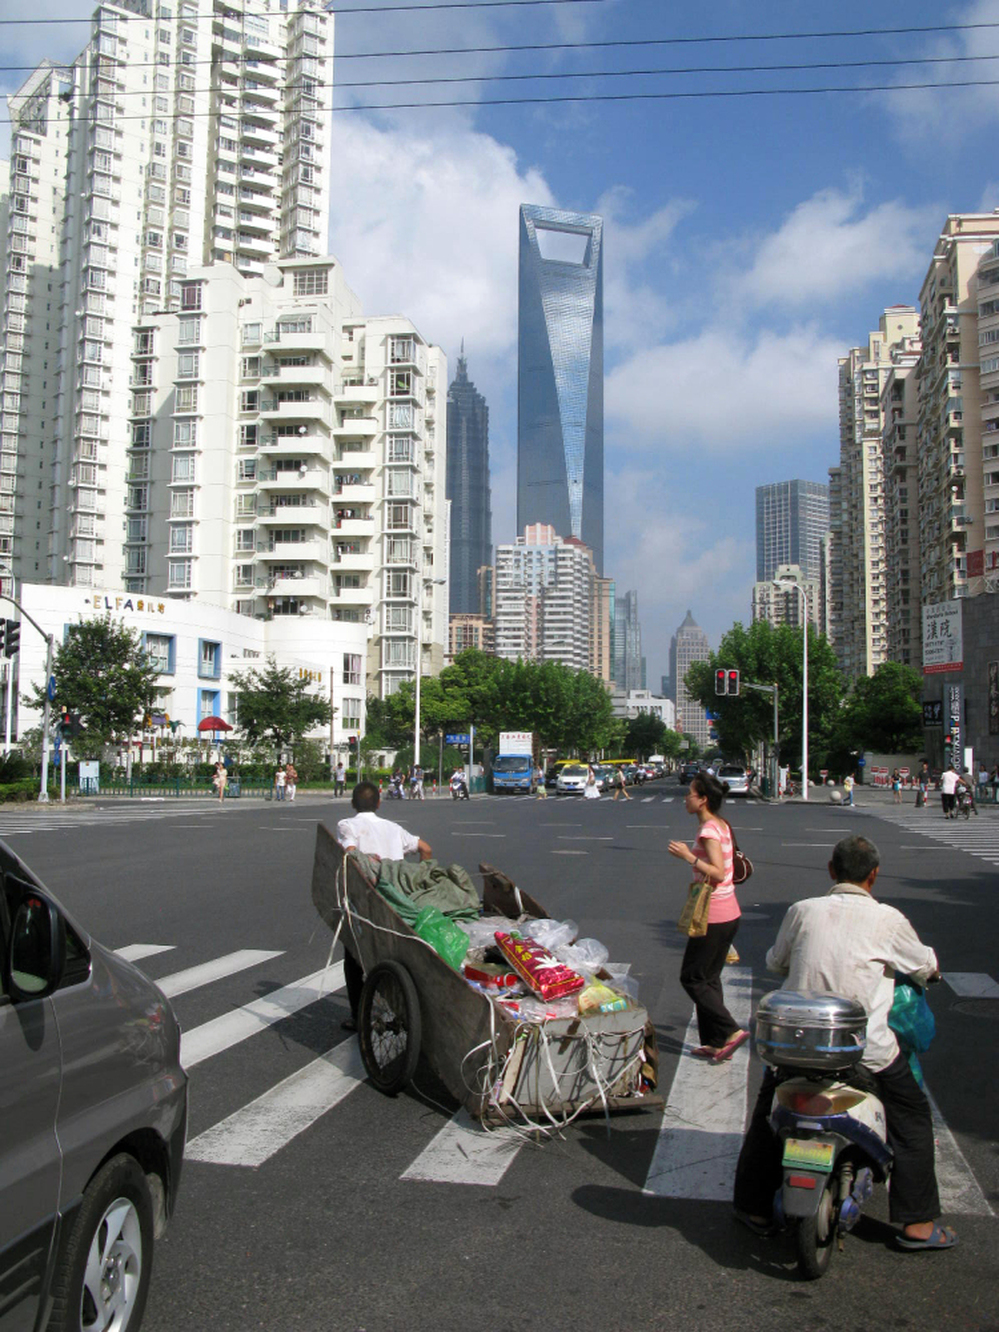 Despite its ultra-modern skyscrapers and paved streets, some Shanghai residents still transport items on carts.